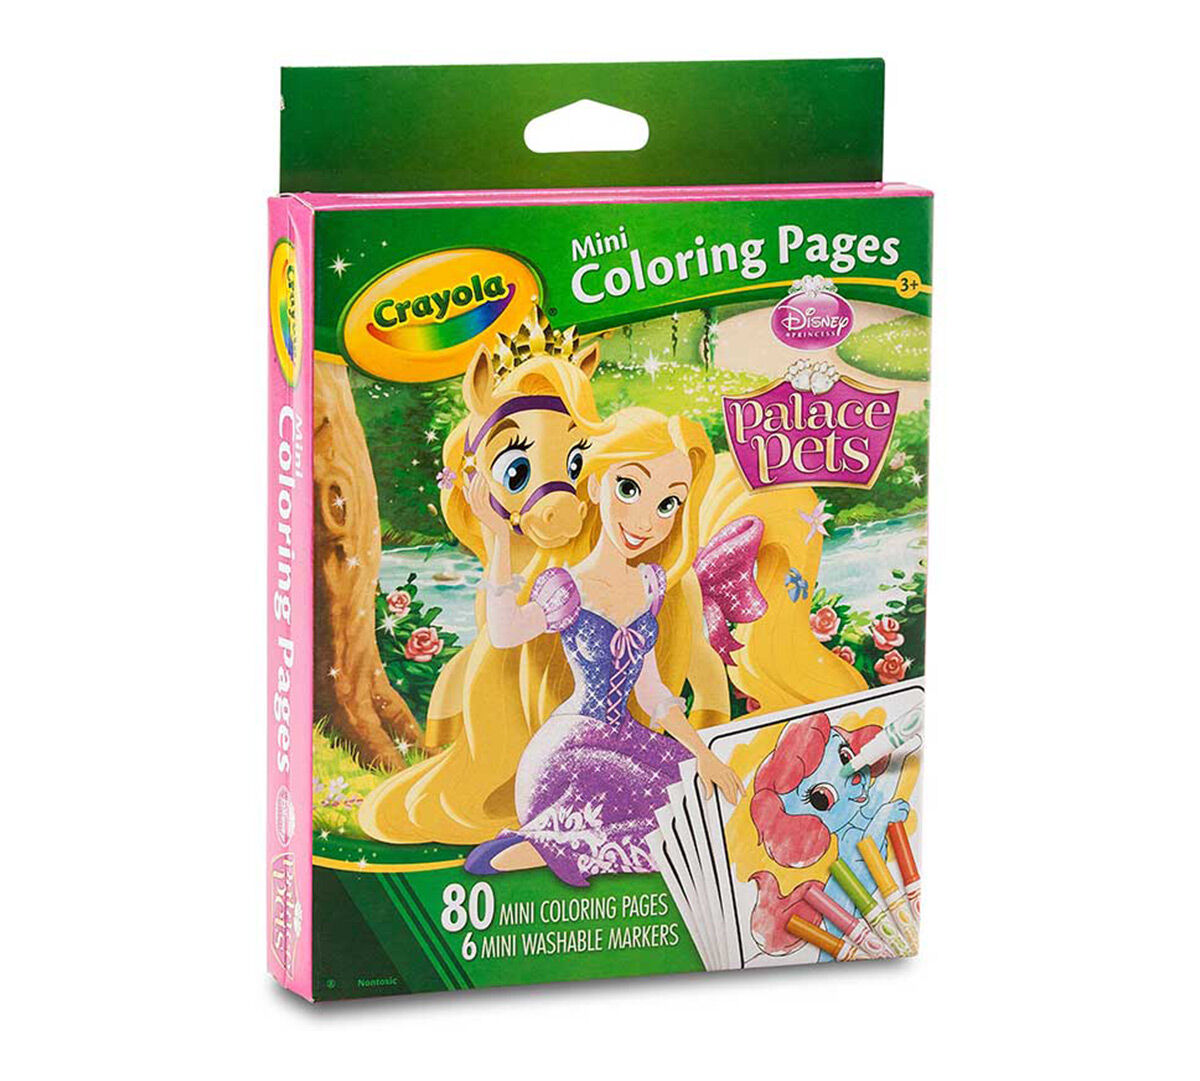 Disney princess palace pets coloring pages - Mini Coloring Pages Disney Princess Palace Pets